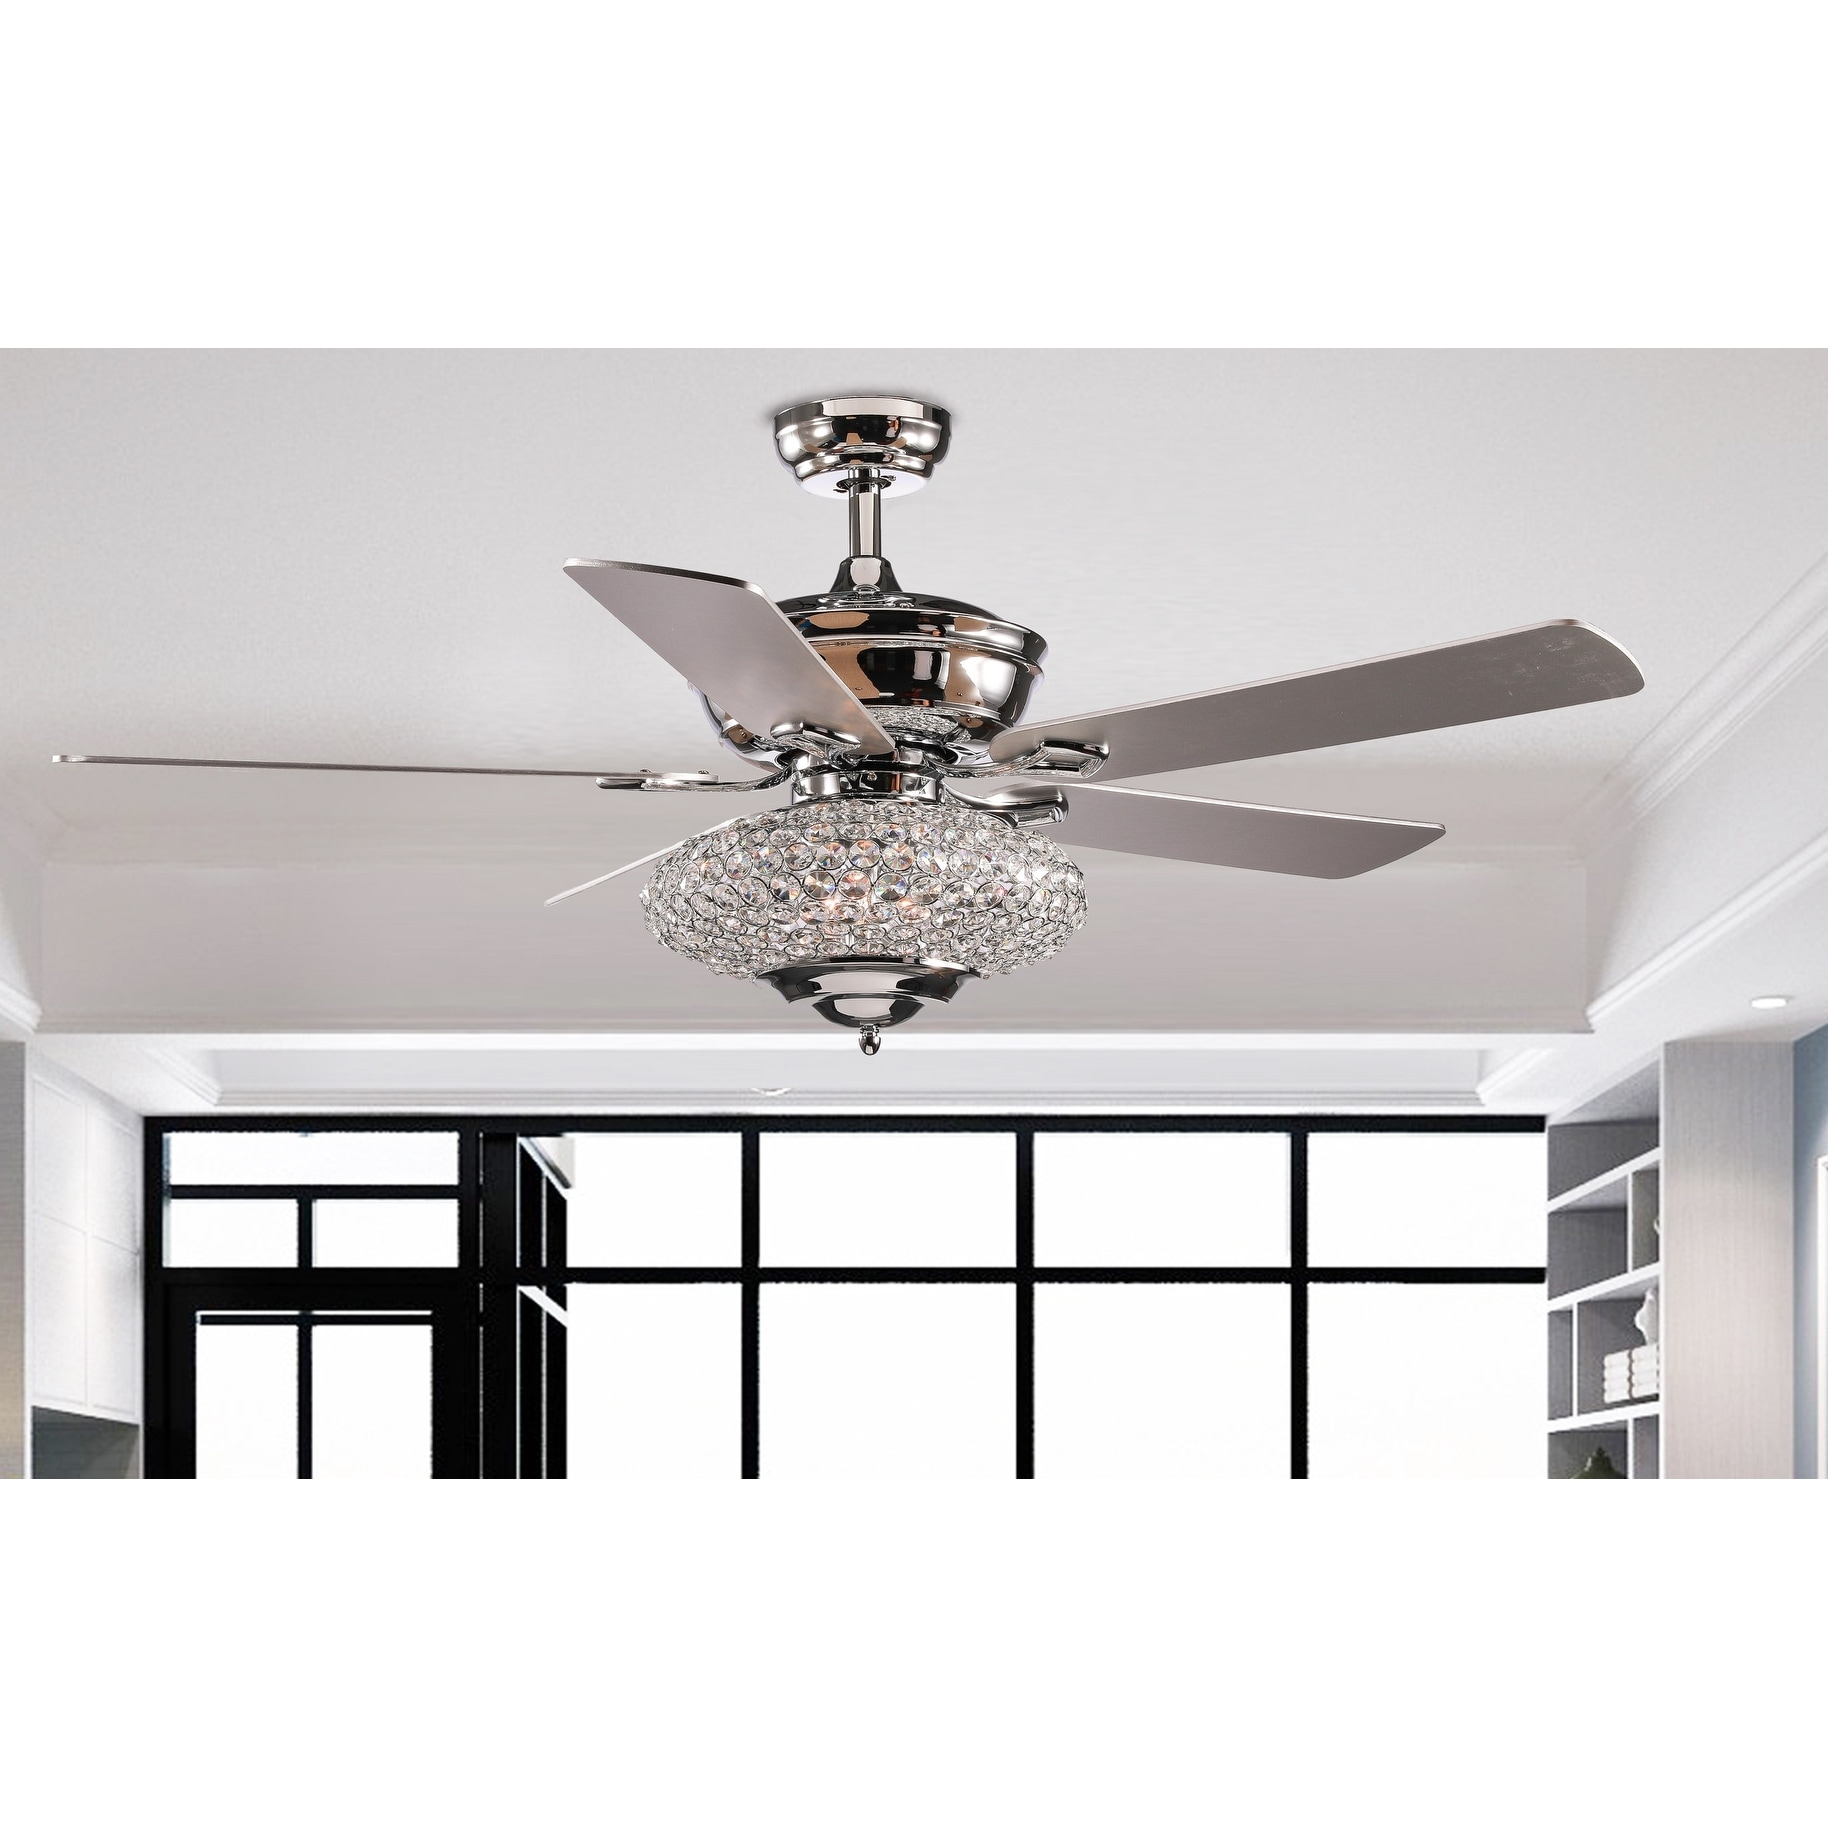 Shop 52 Deneb 5 Blade Crystal Ceiling Fan With Remote Control And Light Kit Included Overstock 31964114